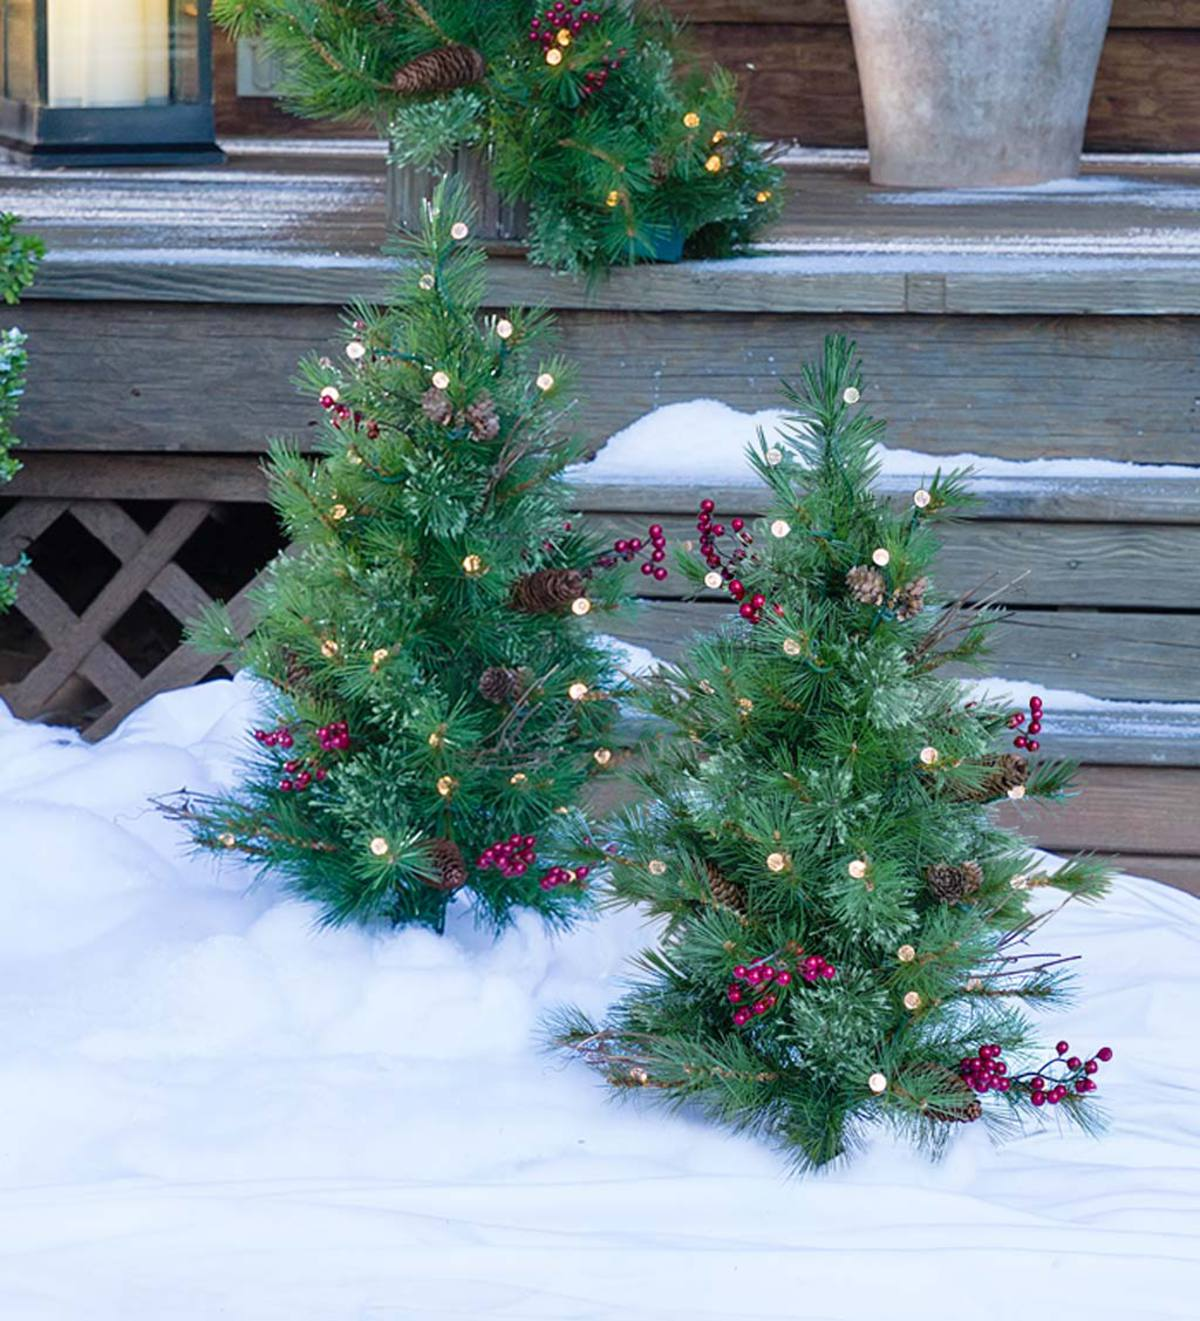 Living Christmas Trees For Sale: Lighted Pathway Christmas Trees, Set Of 2